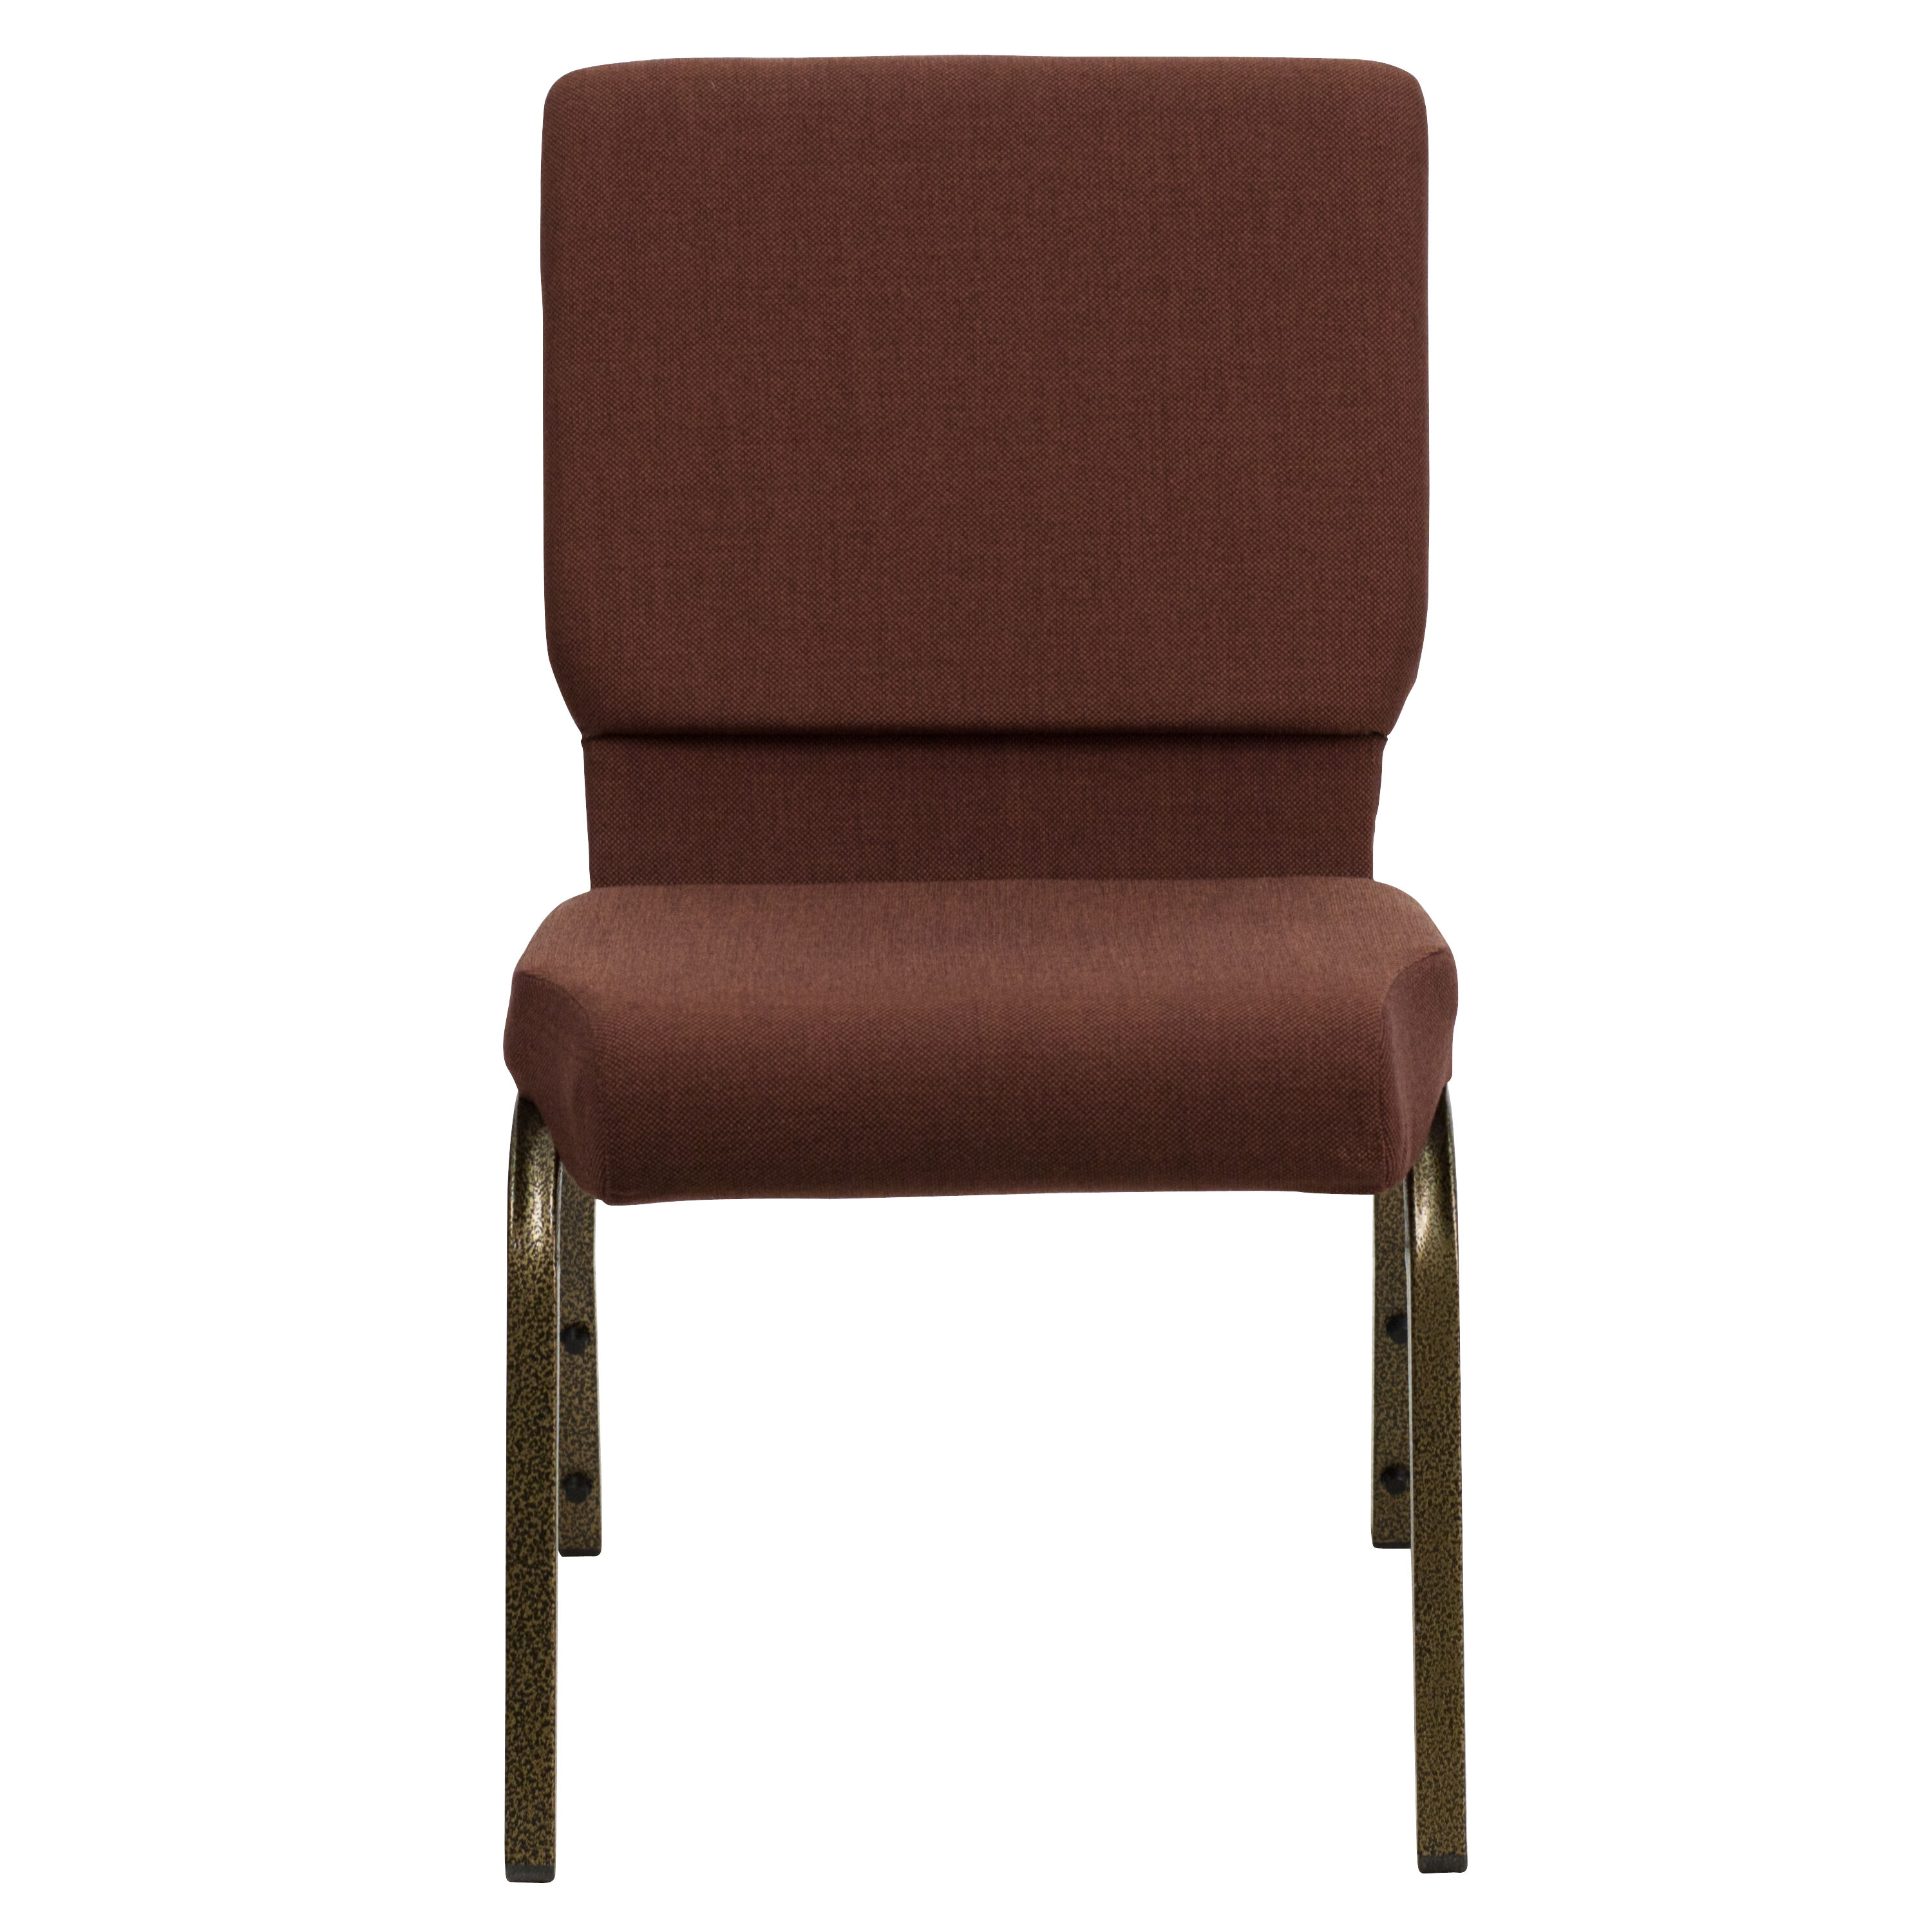 stackable church chairs mamas and papas chair seat brown fabric fd ch02185 gv 10355 gg